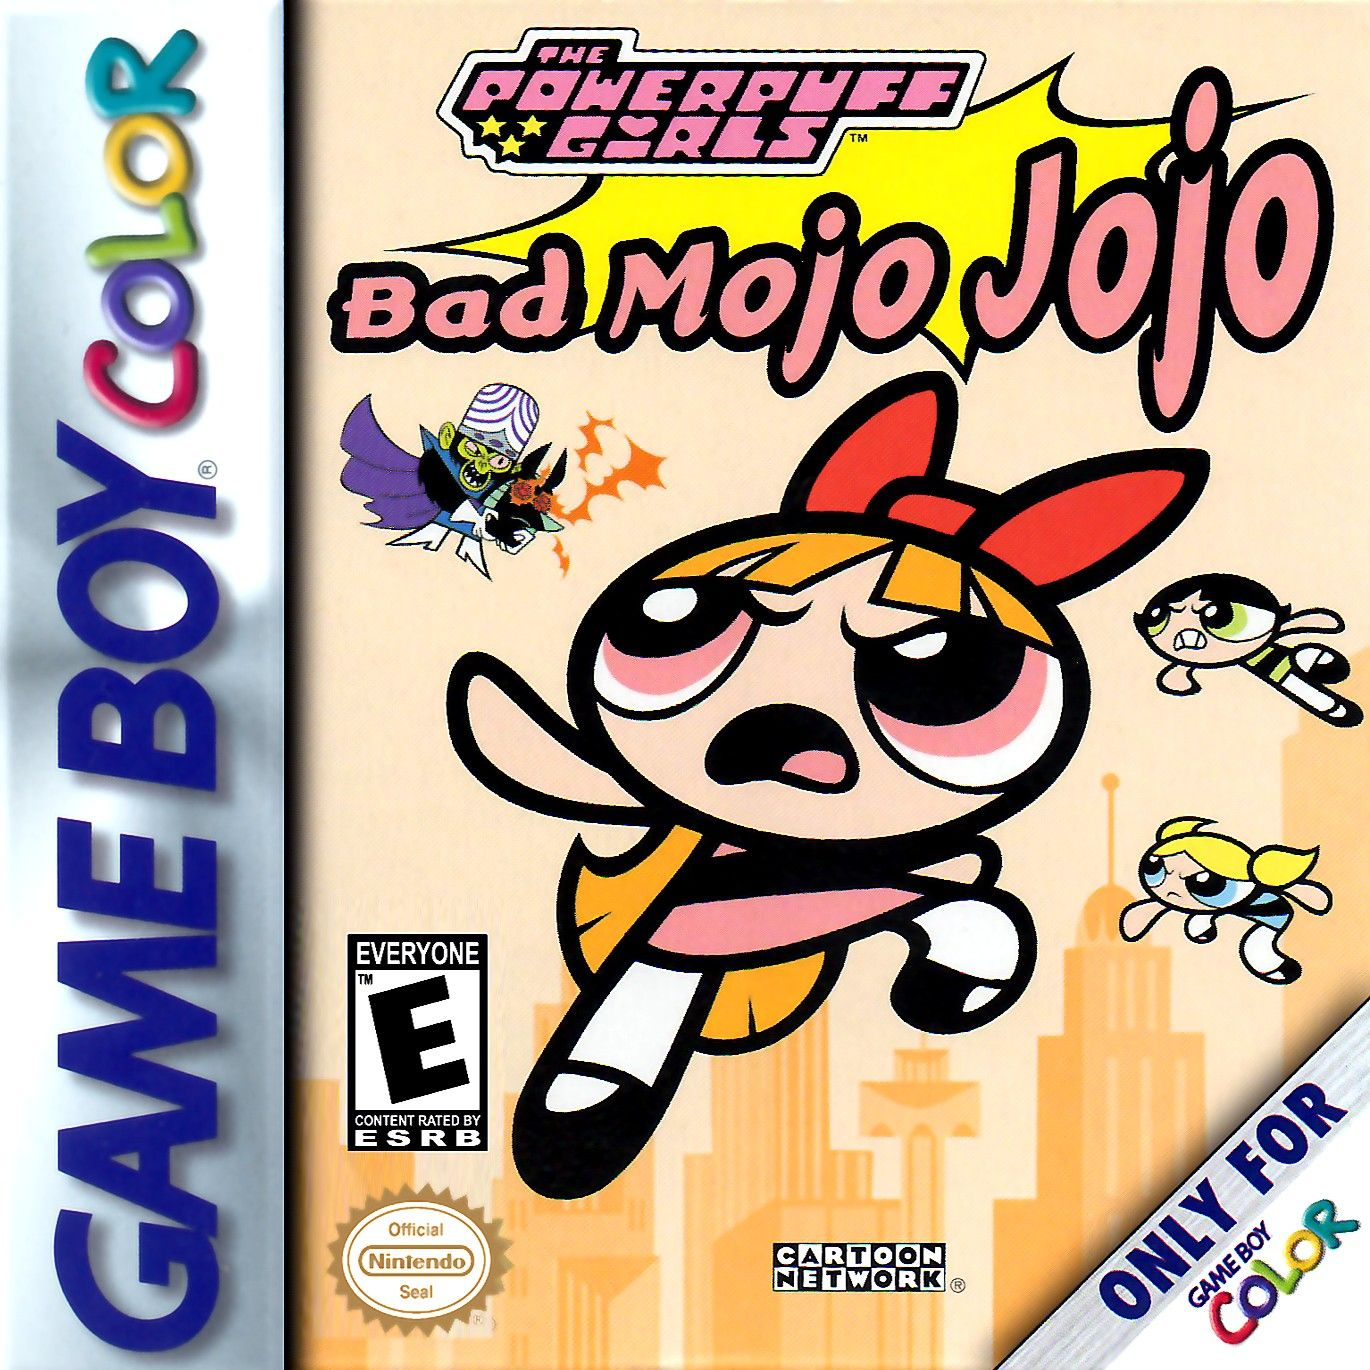 Game boy color online free - Powerpuff Girls The Bad Mojo Jojo Is A Nintendo Game Boy Color Game That